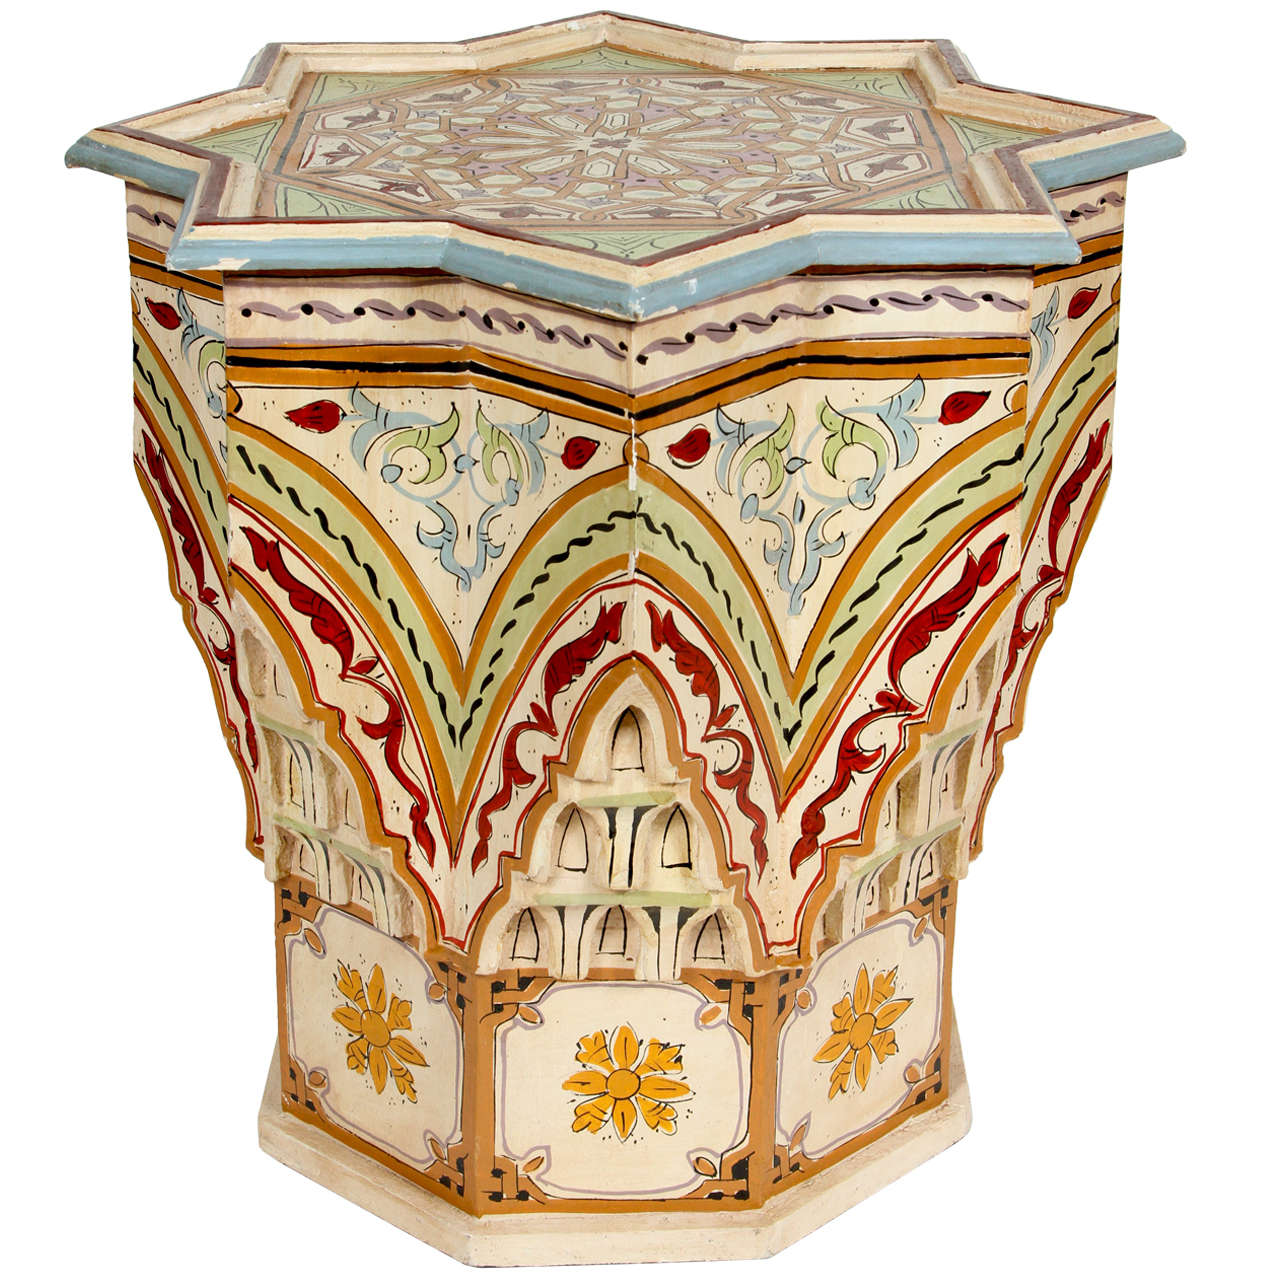 Moroccan hand painted side table at 1stdibs for Moroccan hand painted furniture